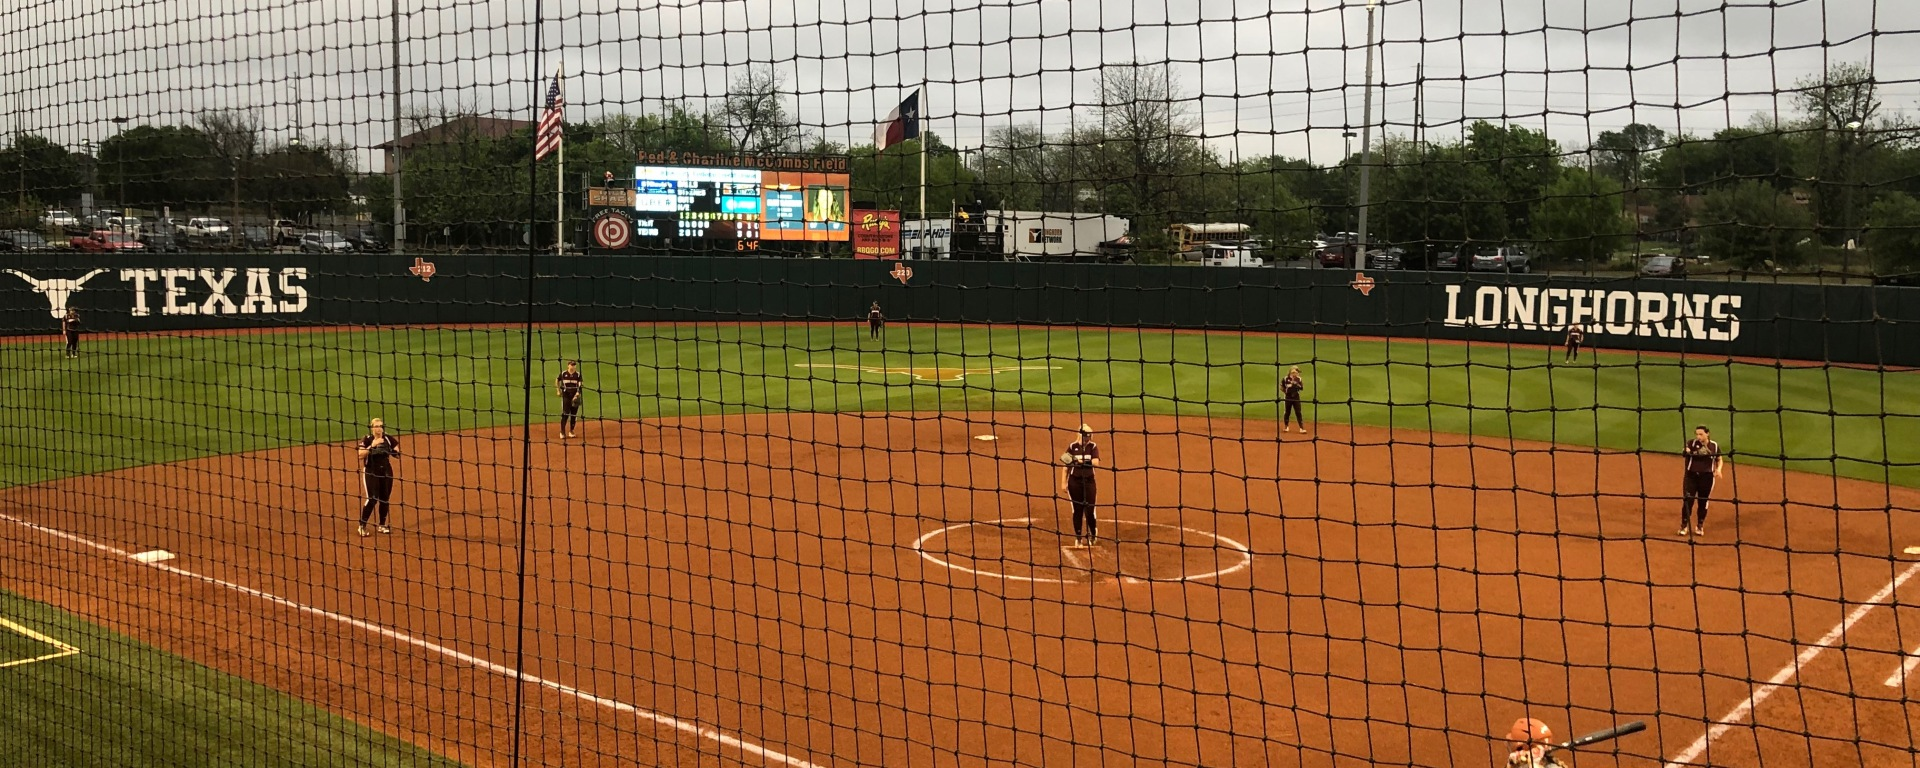 Texas State softball gets in position to play.